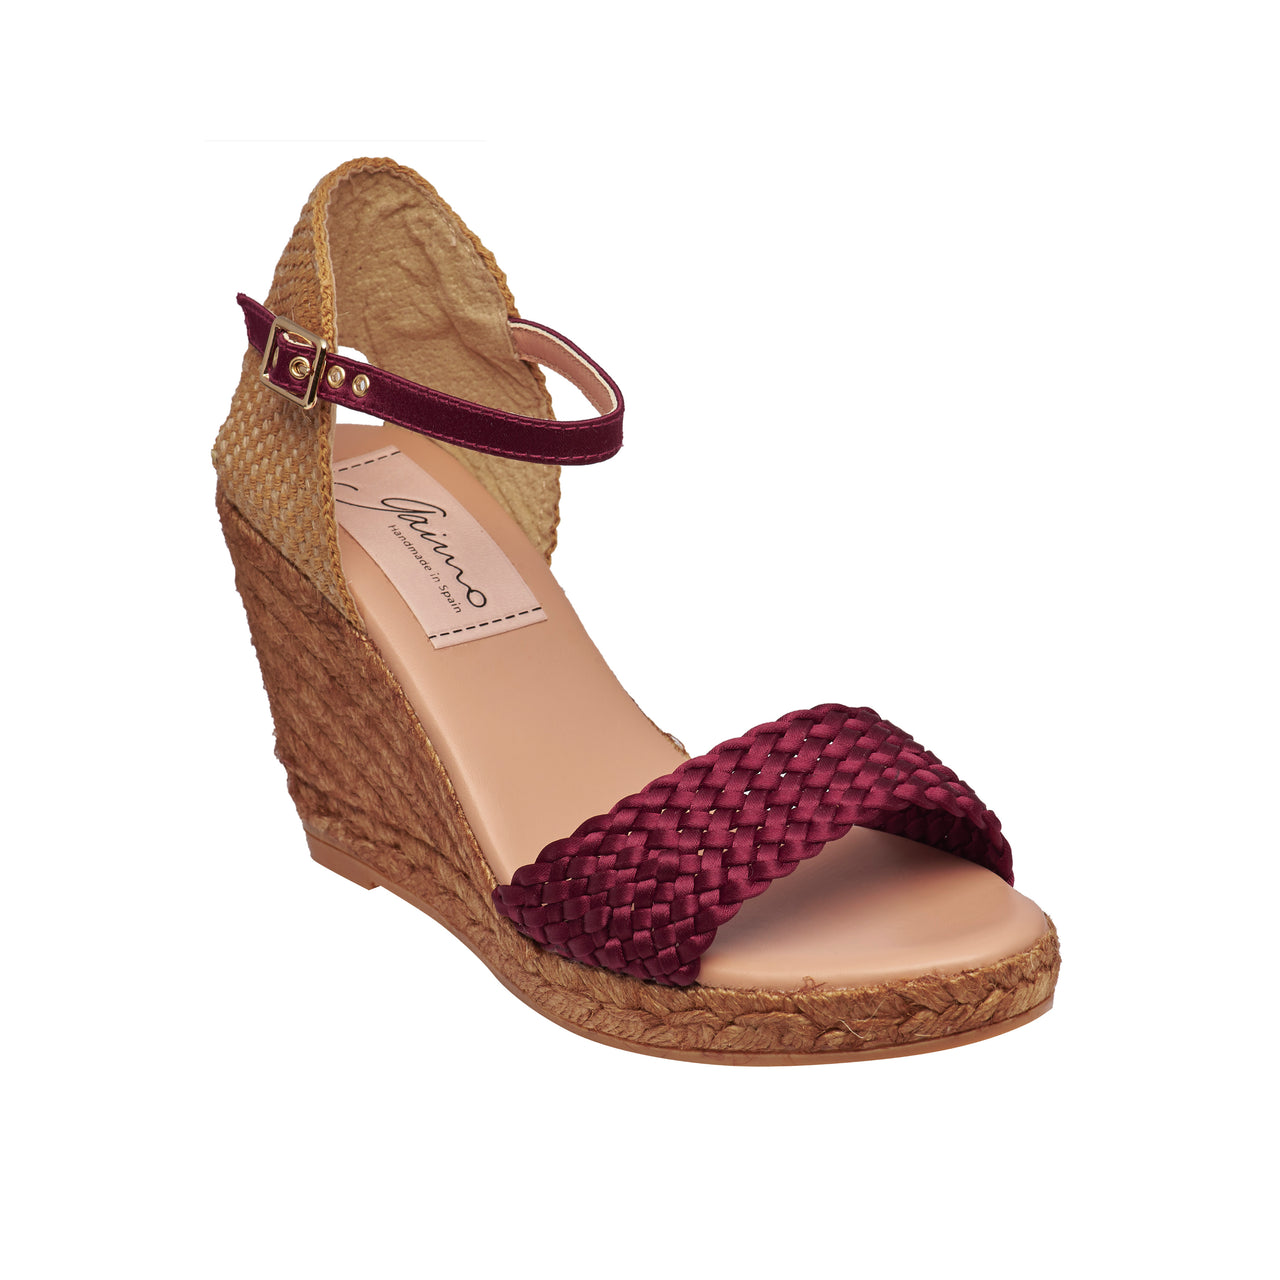 HONEY Maroon espadrilles [sizes 40, 41 available]